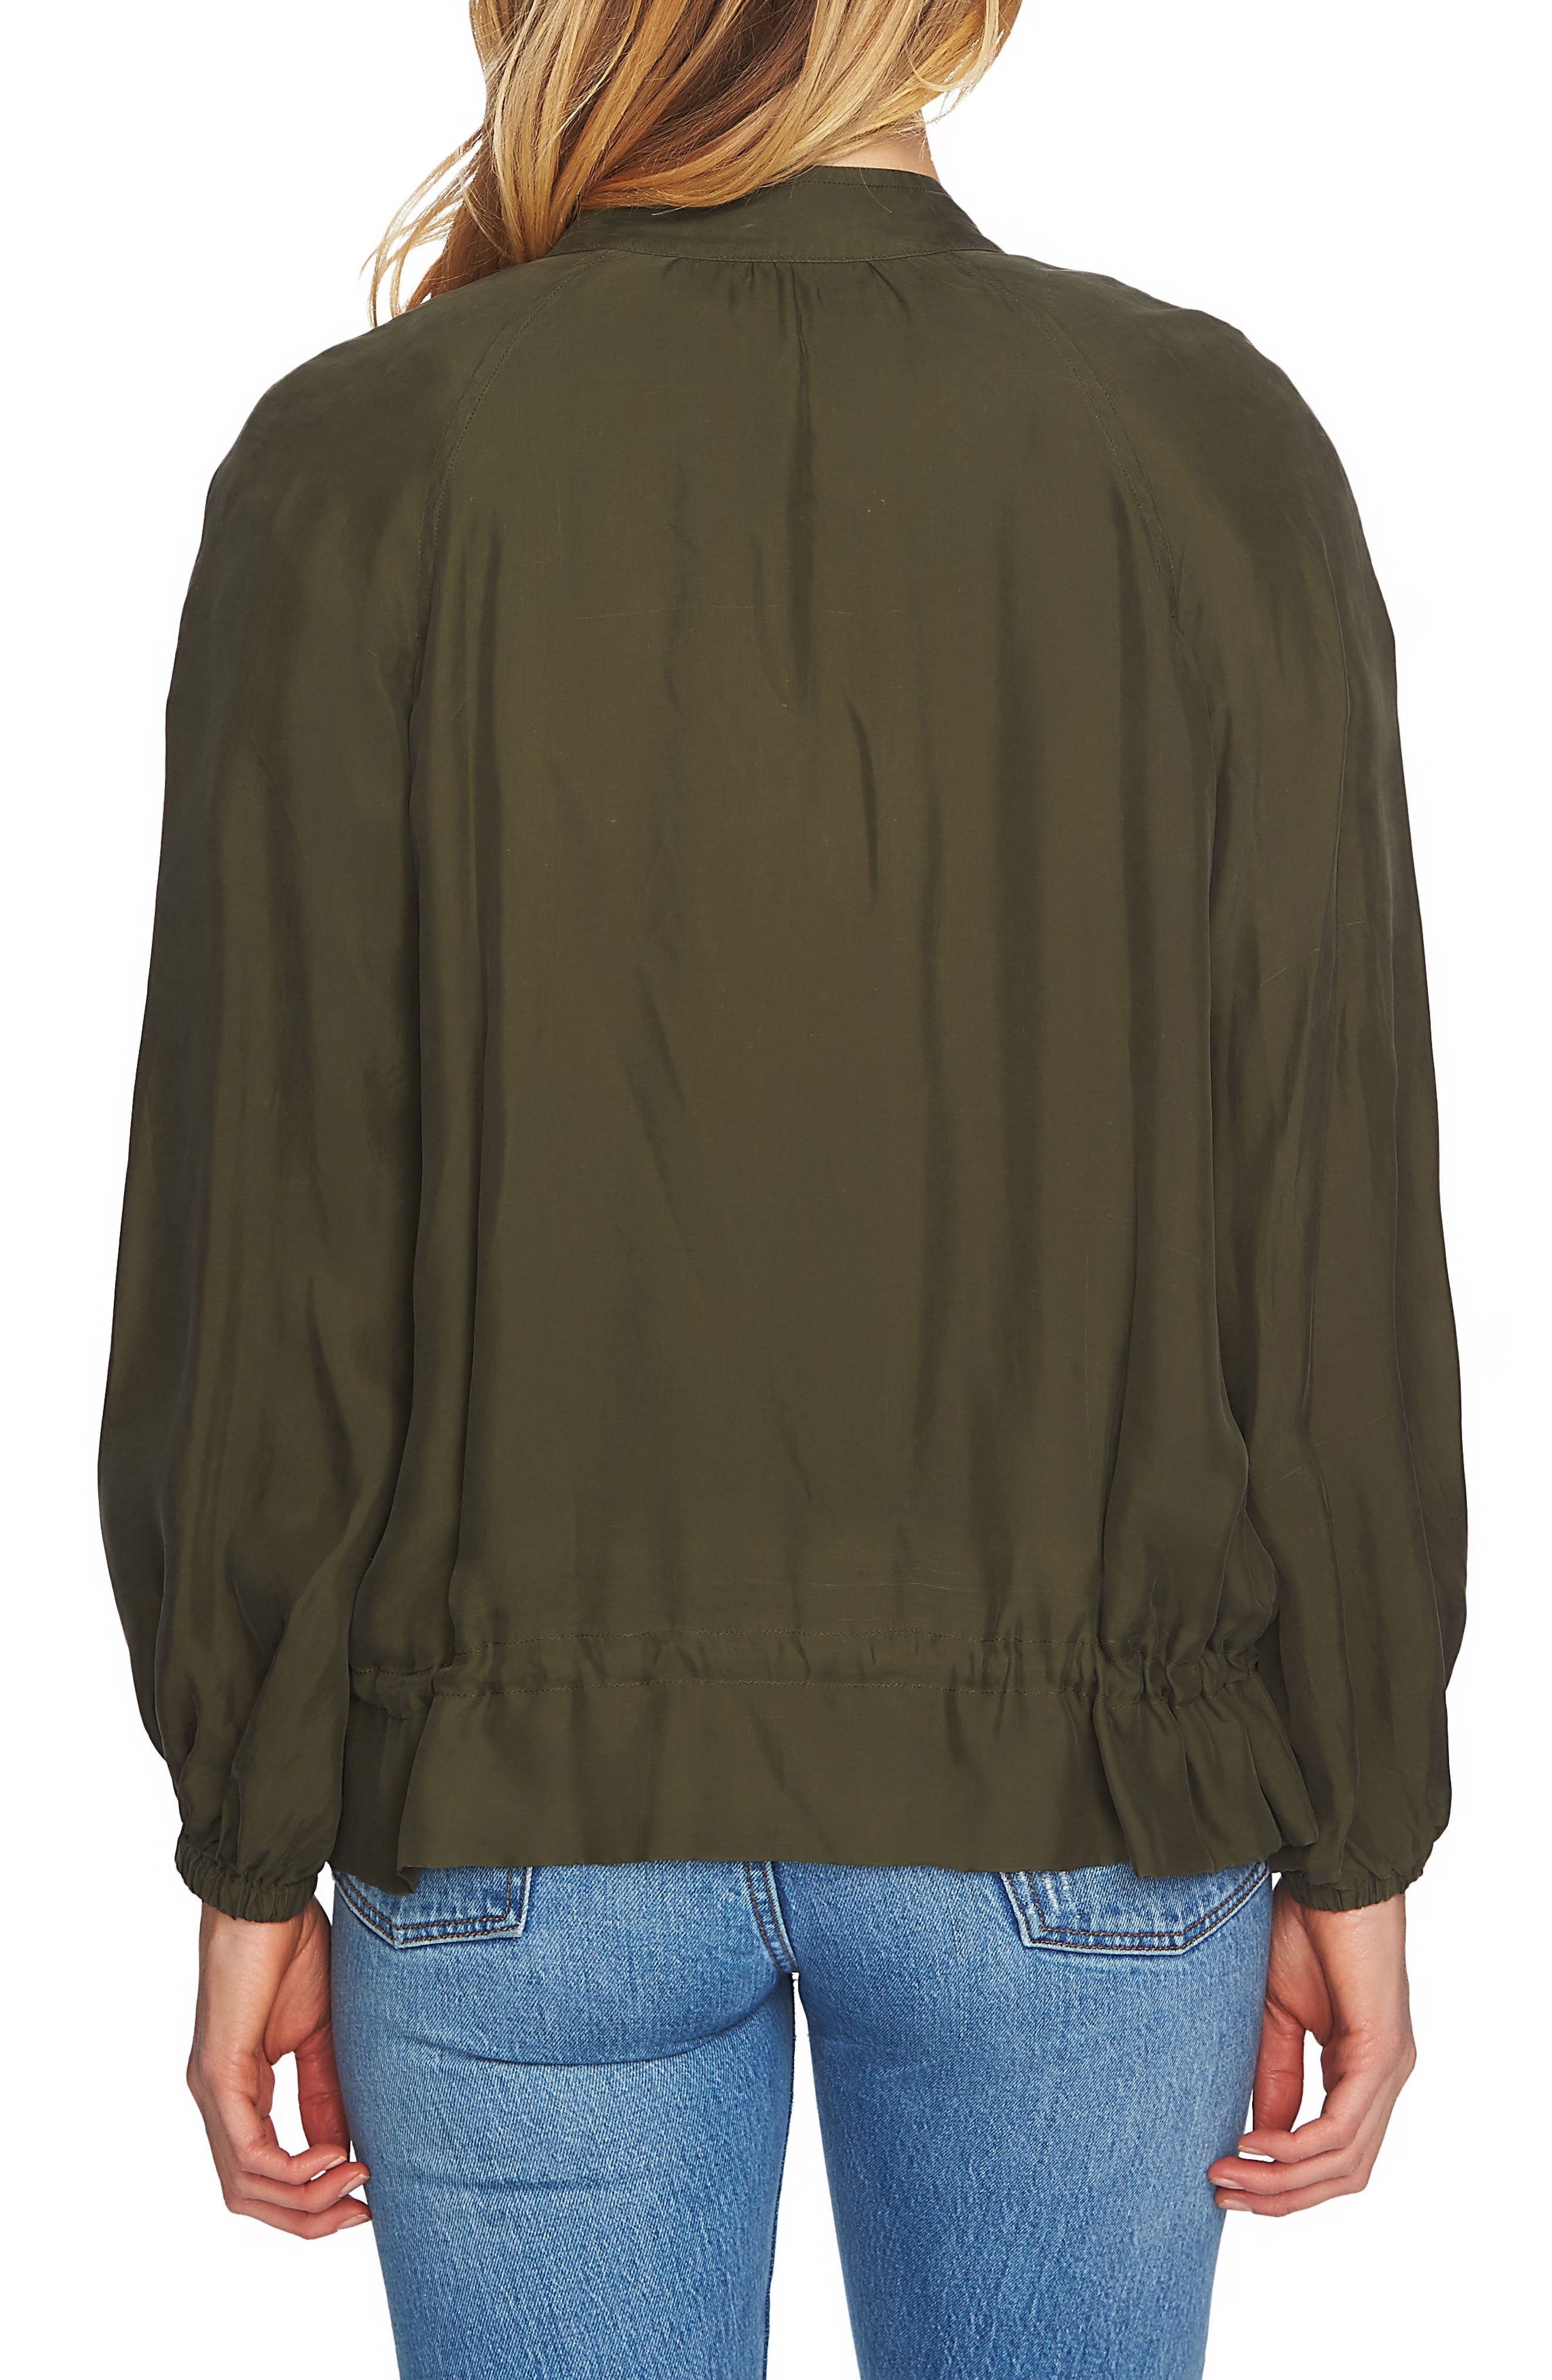 Blouson Sleeve Bomber Jacket,                             Alternate thumbnail 2, color,                             311